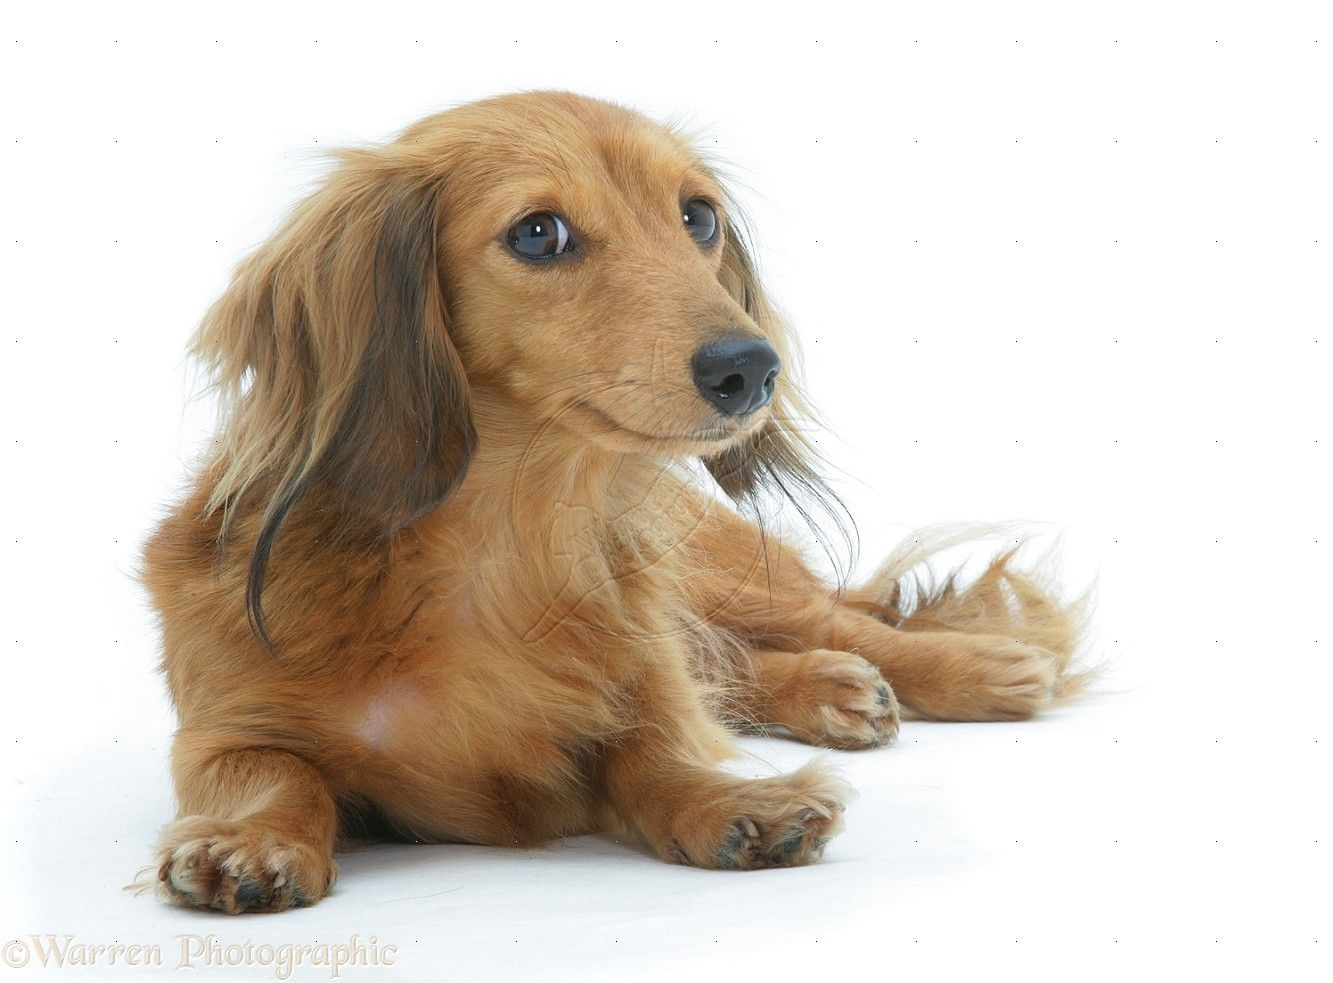 Dachshund Wp09845 Red Miniature Longhaired Dachshund Lying Head Up